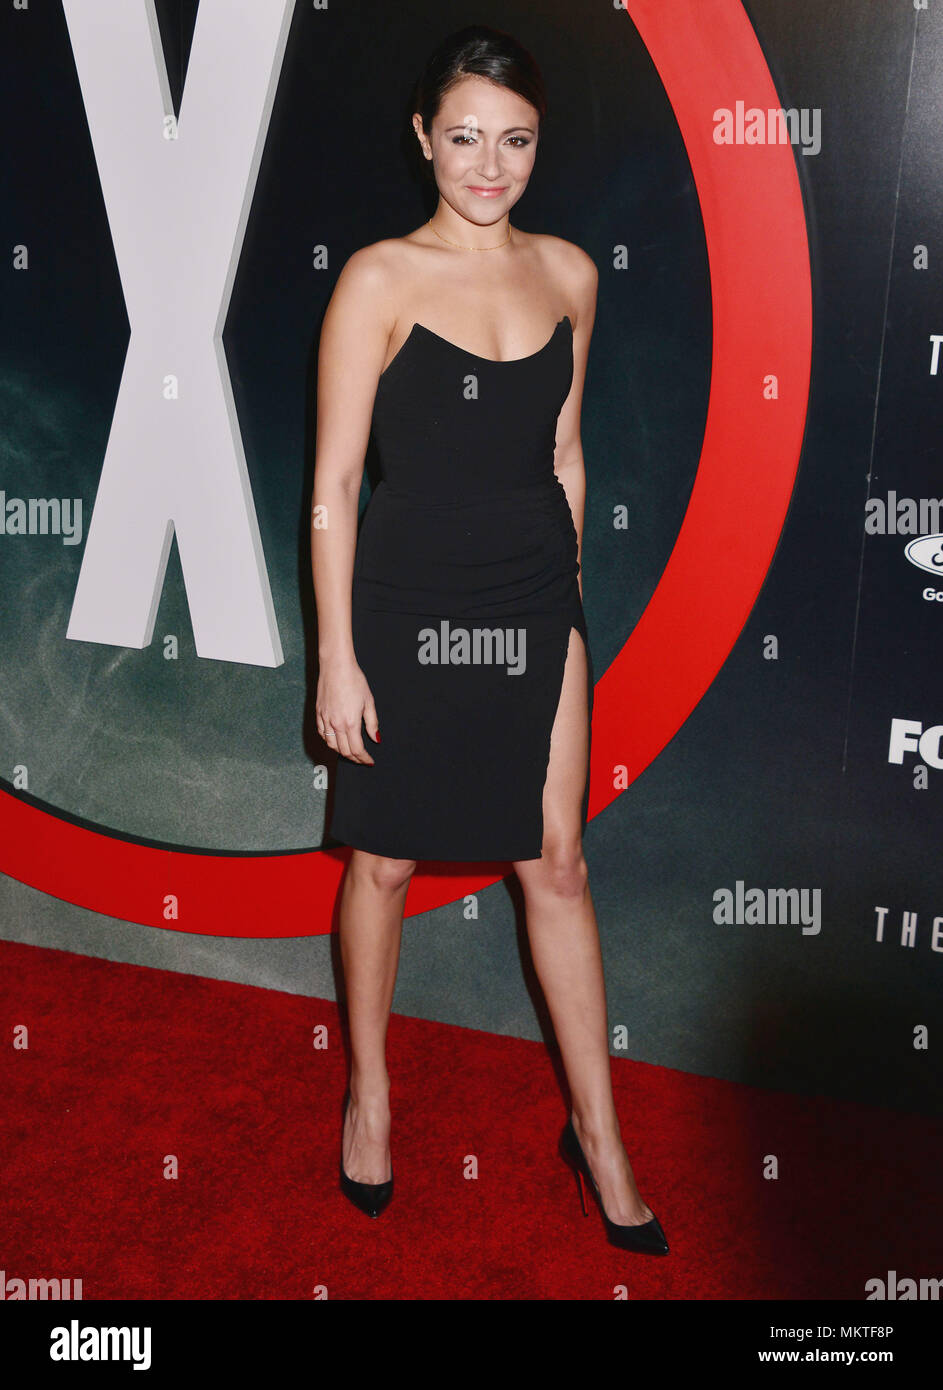 Italia Ricci 061  at The X-Files Premiere at California Science Center in Los Angeles, CA  January 12, 2016.-------- Italia Ricci 061  --------- Event in Hollywood Life - California,  Red Carpet Event, Vertical, USA, Film Industry, Celebrities,  Photography, Bestof, Arts Culture and Entertainment, Topix Celebrities fashion /  from the Red Carpet-2016, one person, Vertical, Best of, Hollywood Life, Event in Hollywood Life - California,  Red Carpet and backstage, USA, Film Industry, Celebrities,  movie celebrities, TV celebrities, Music celebrities, Photography, Bestof, Arts Culture and Entertai - Stock Image